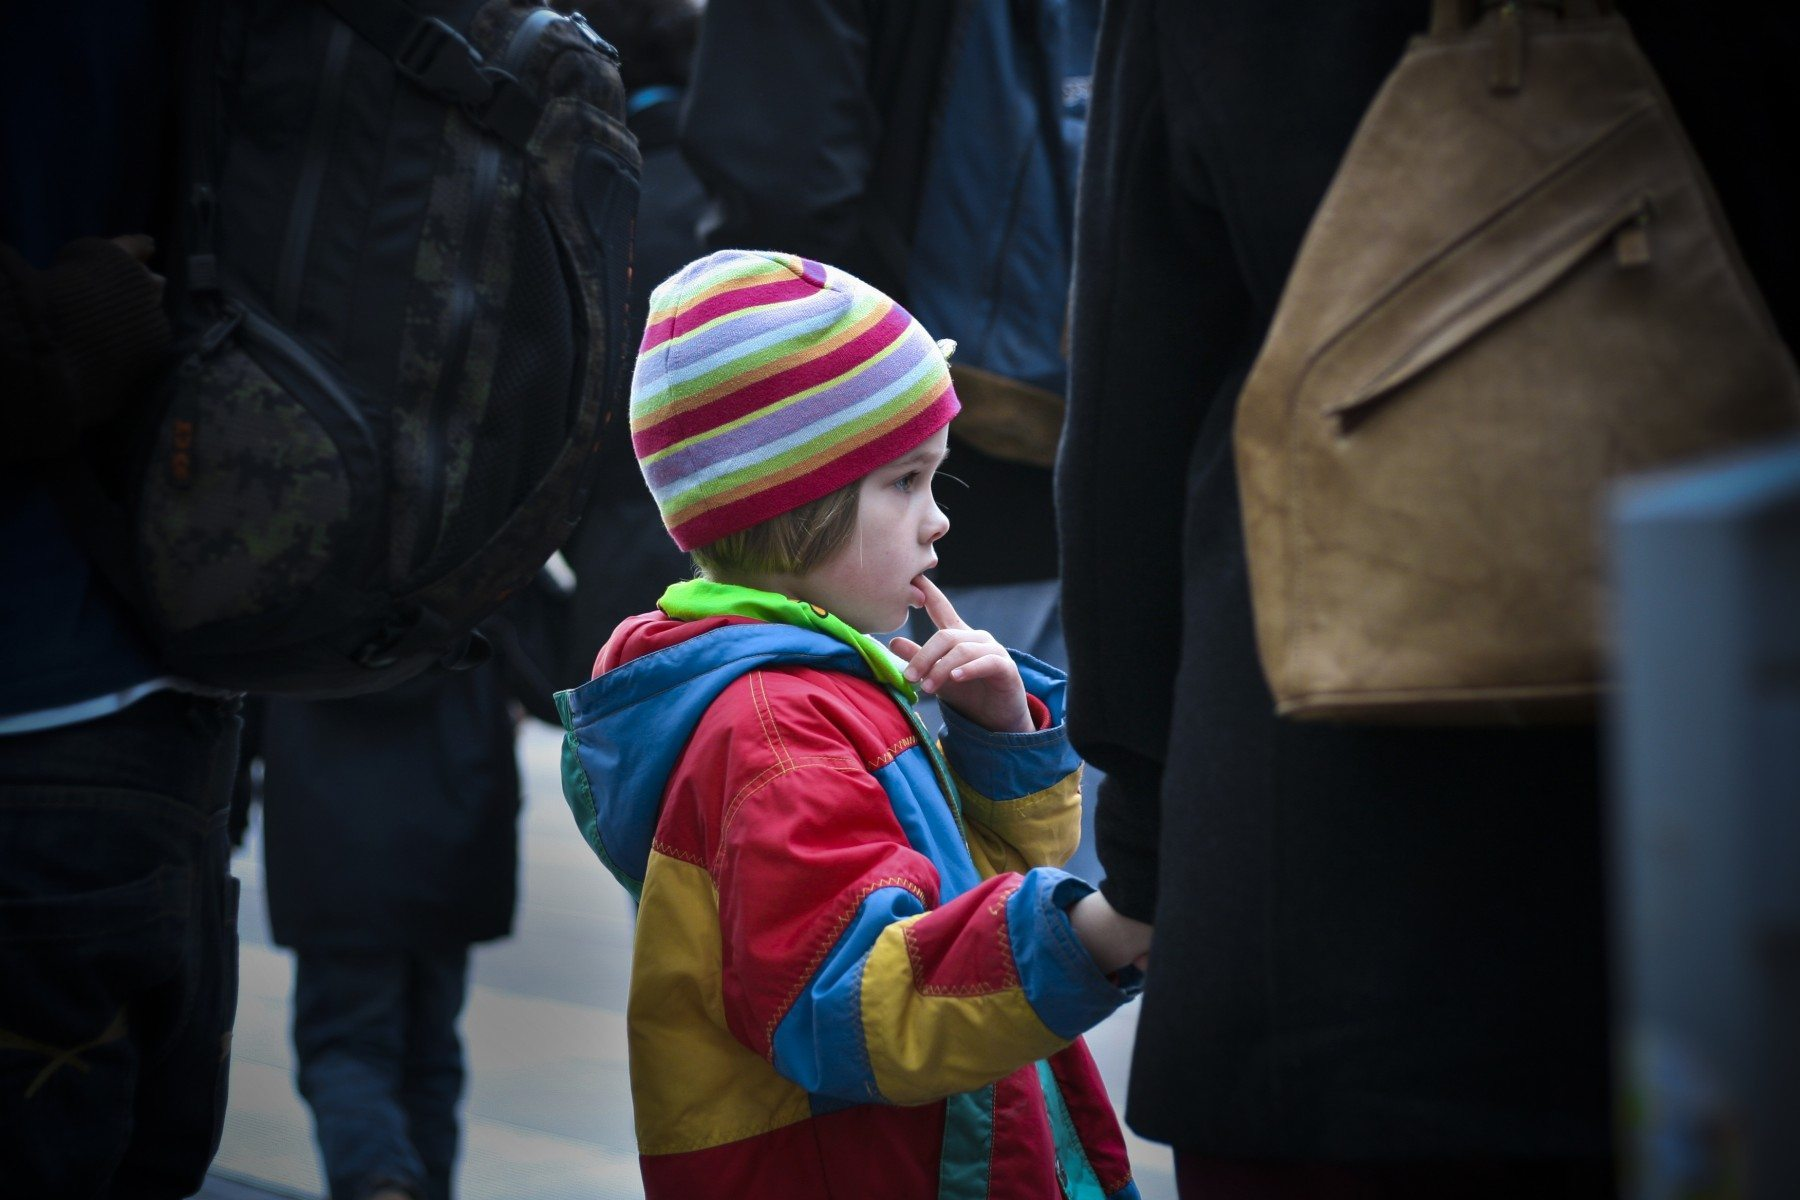 Child in bright coat